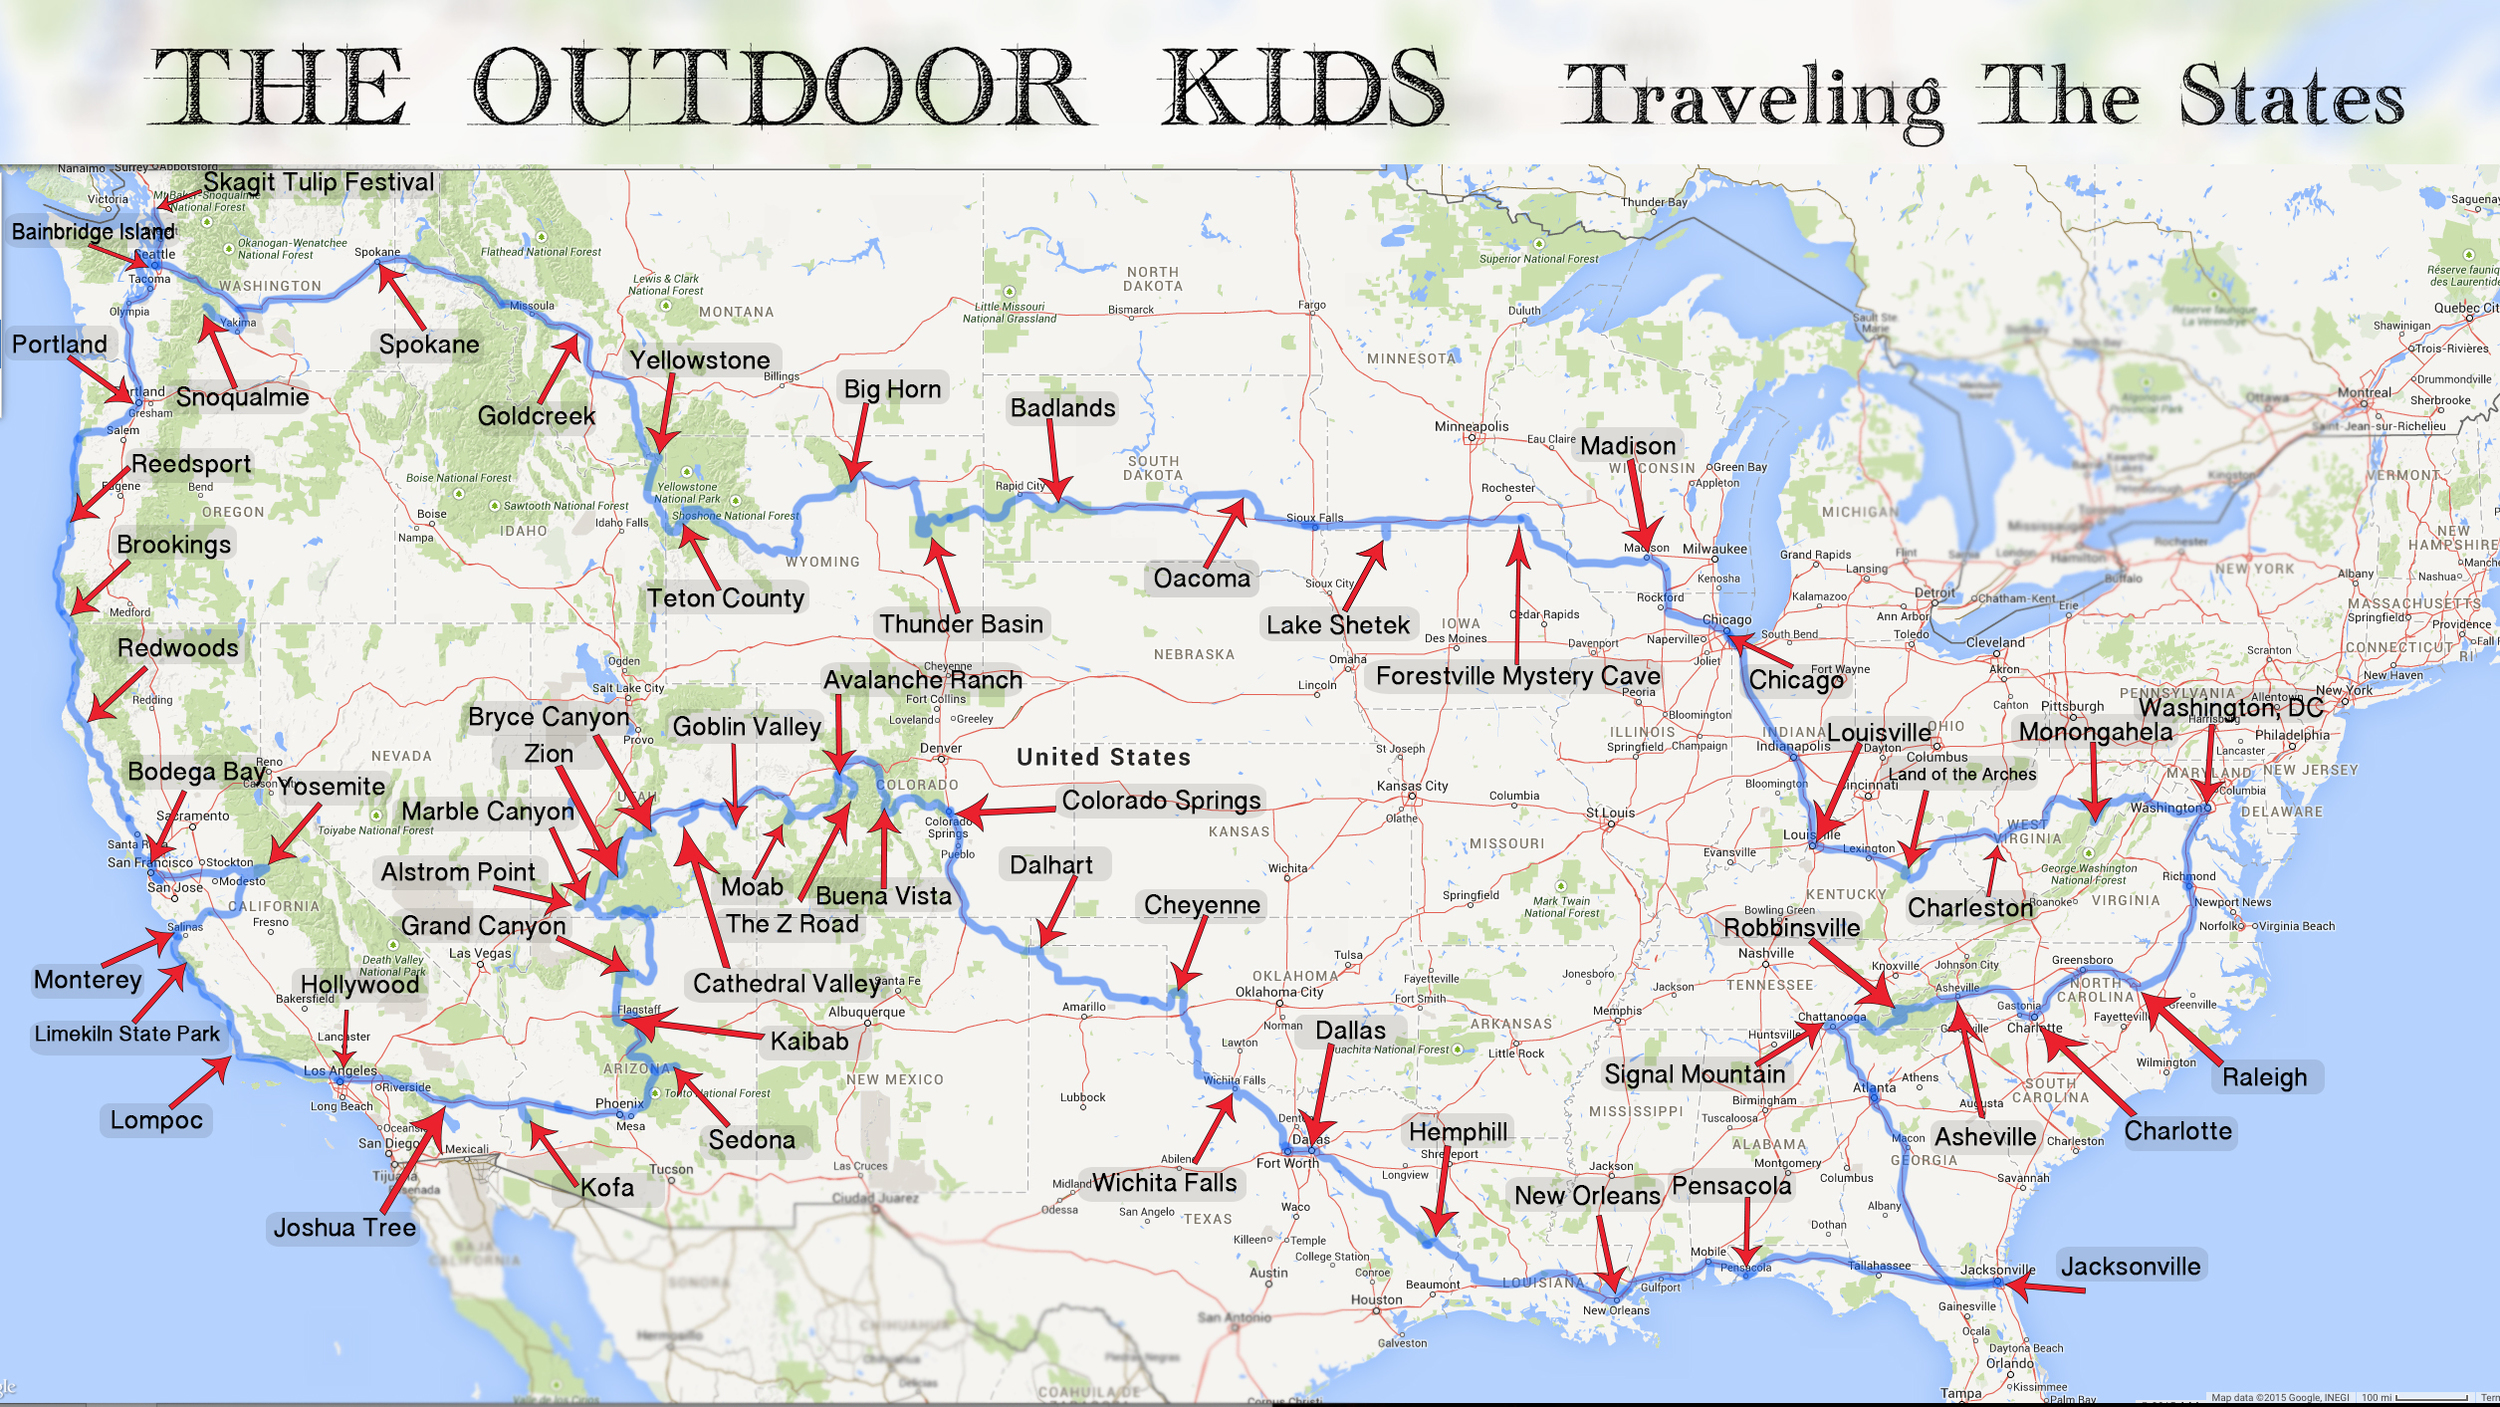 Our road trip itinerary starting in Hollywood, CA then moving North, East, South, then West.